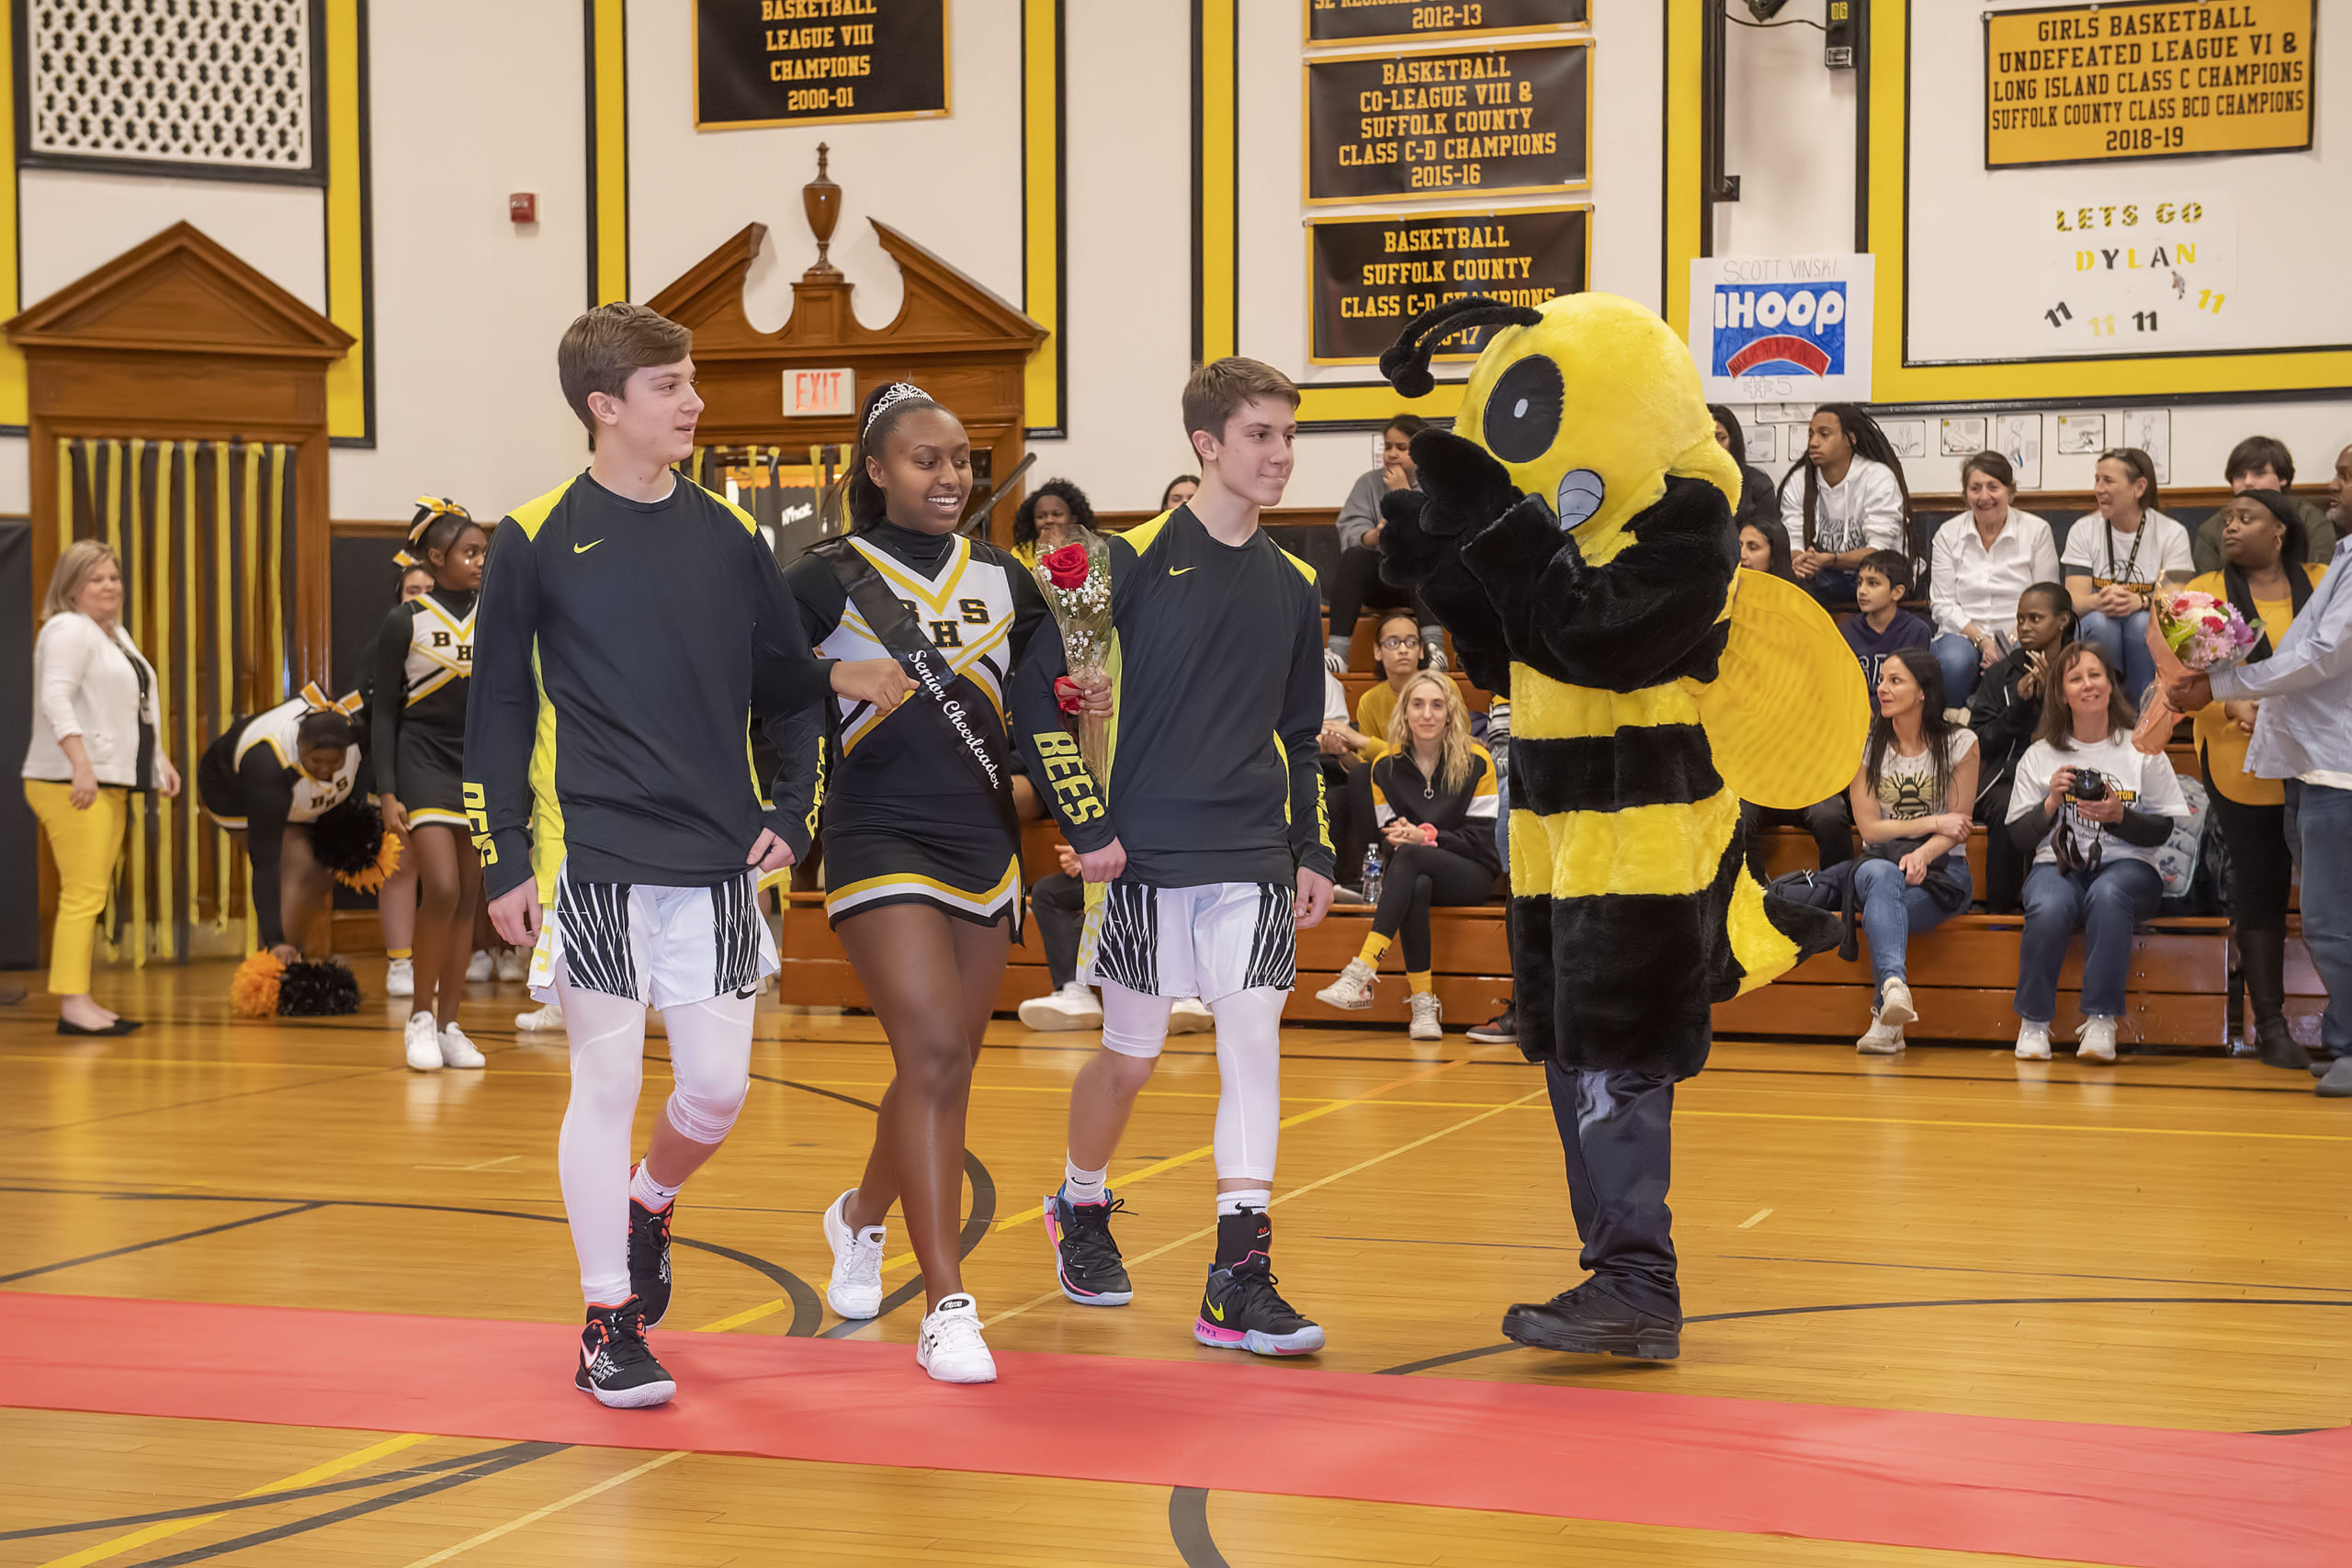 Bridgehampton School senior cheerleader Jaden Campbell is escorted onto the court by the Vinski twins, Kris and Scott. The school's senior cheerleaders were honored as part of the ceremony closing out The Beehive on February 5.